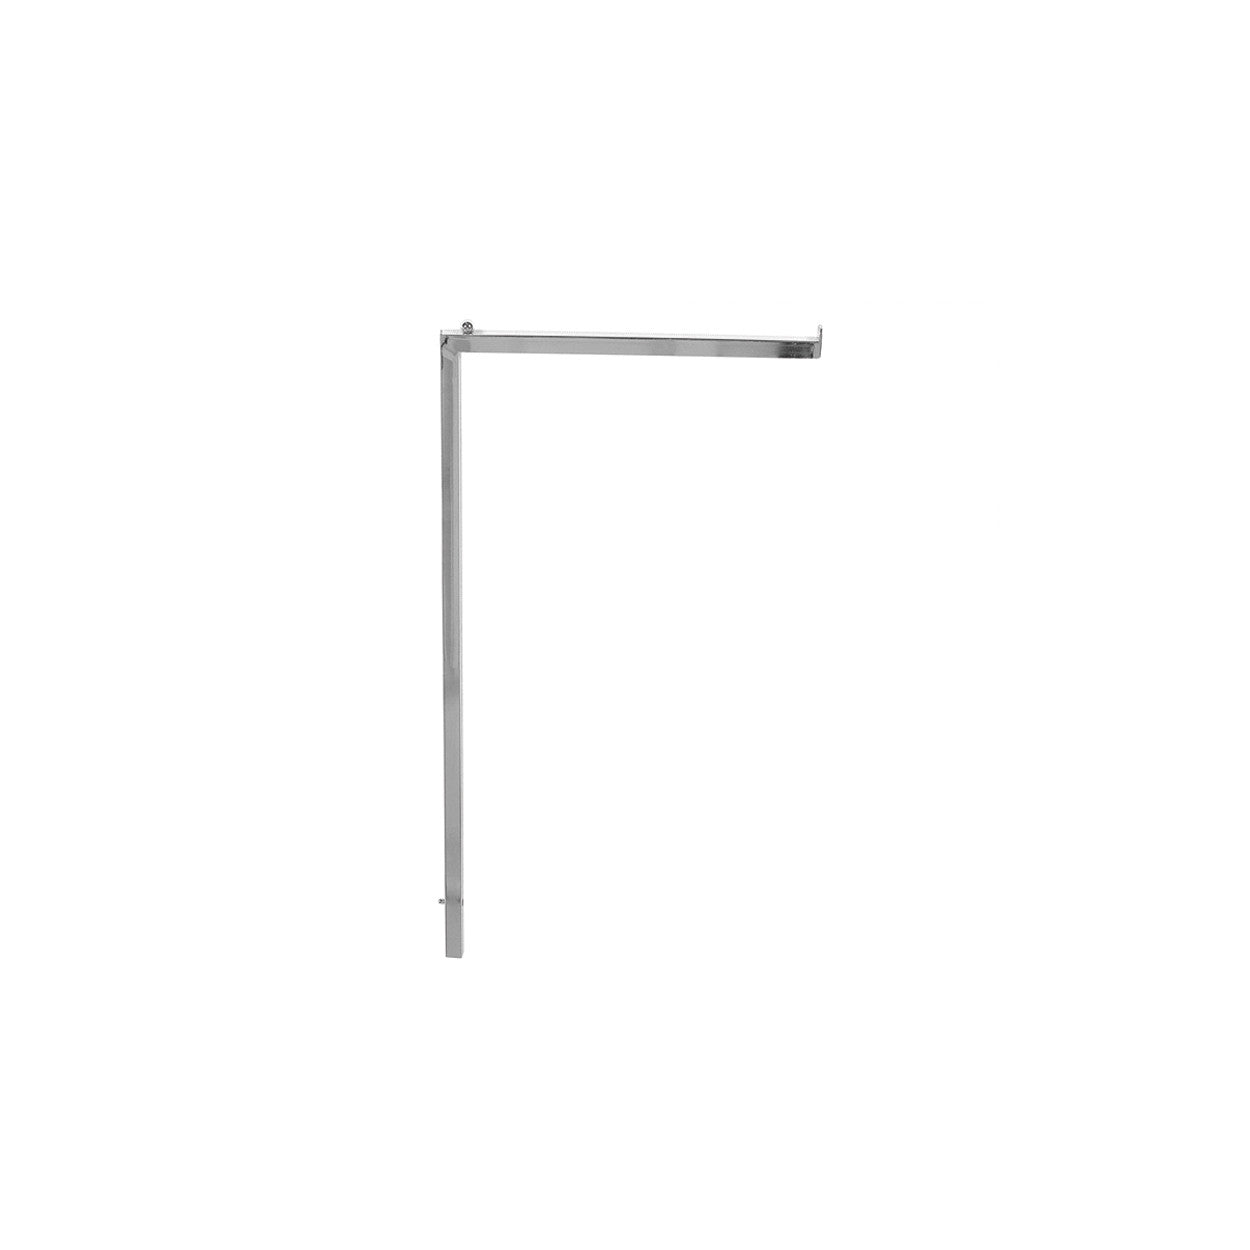 Straight arm for 2-way & 4-way clothes racks  405 mm L